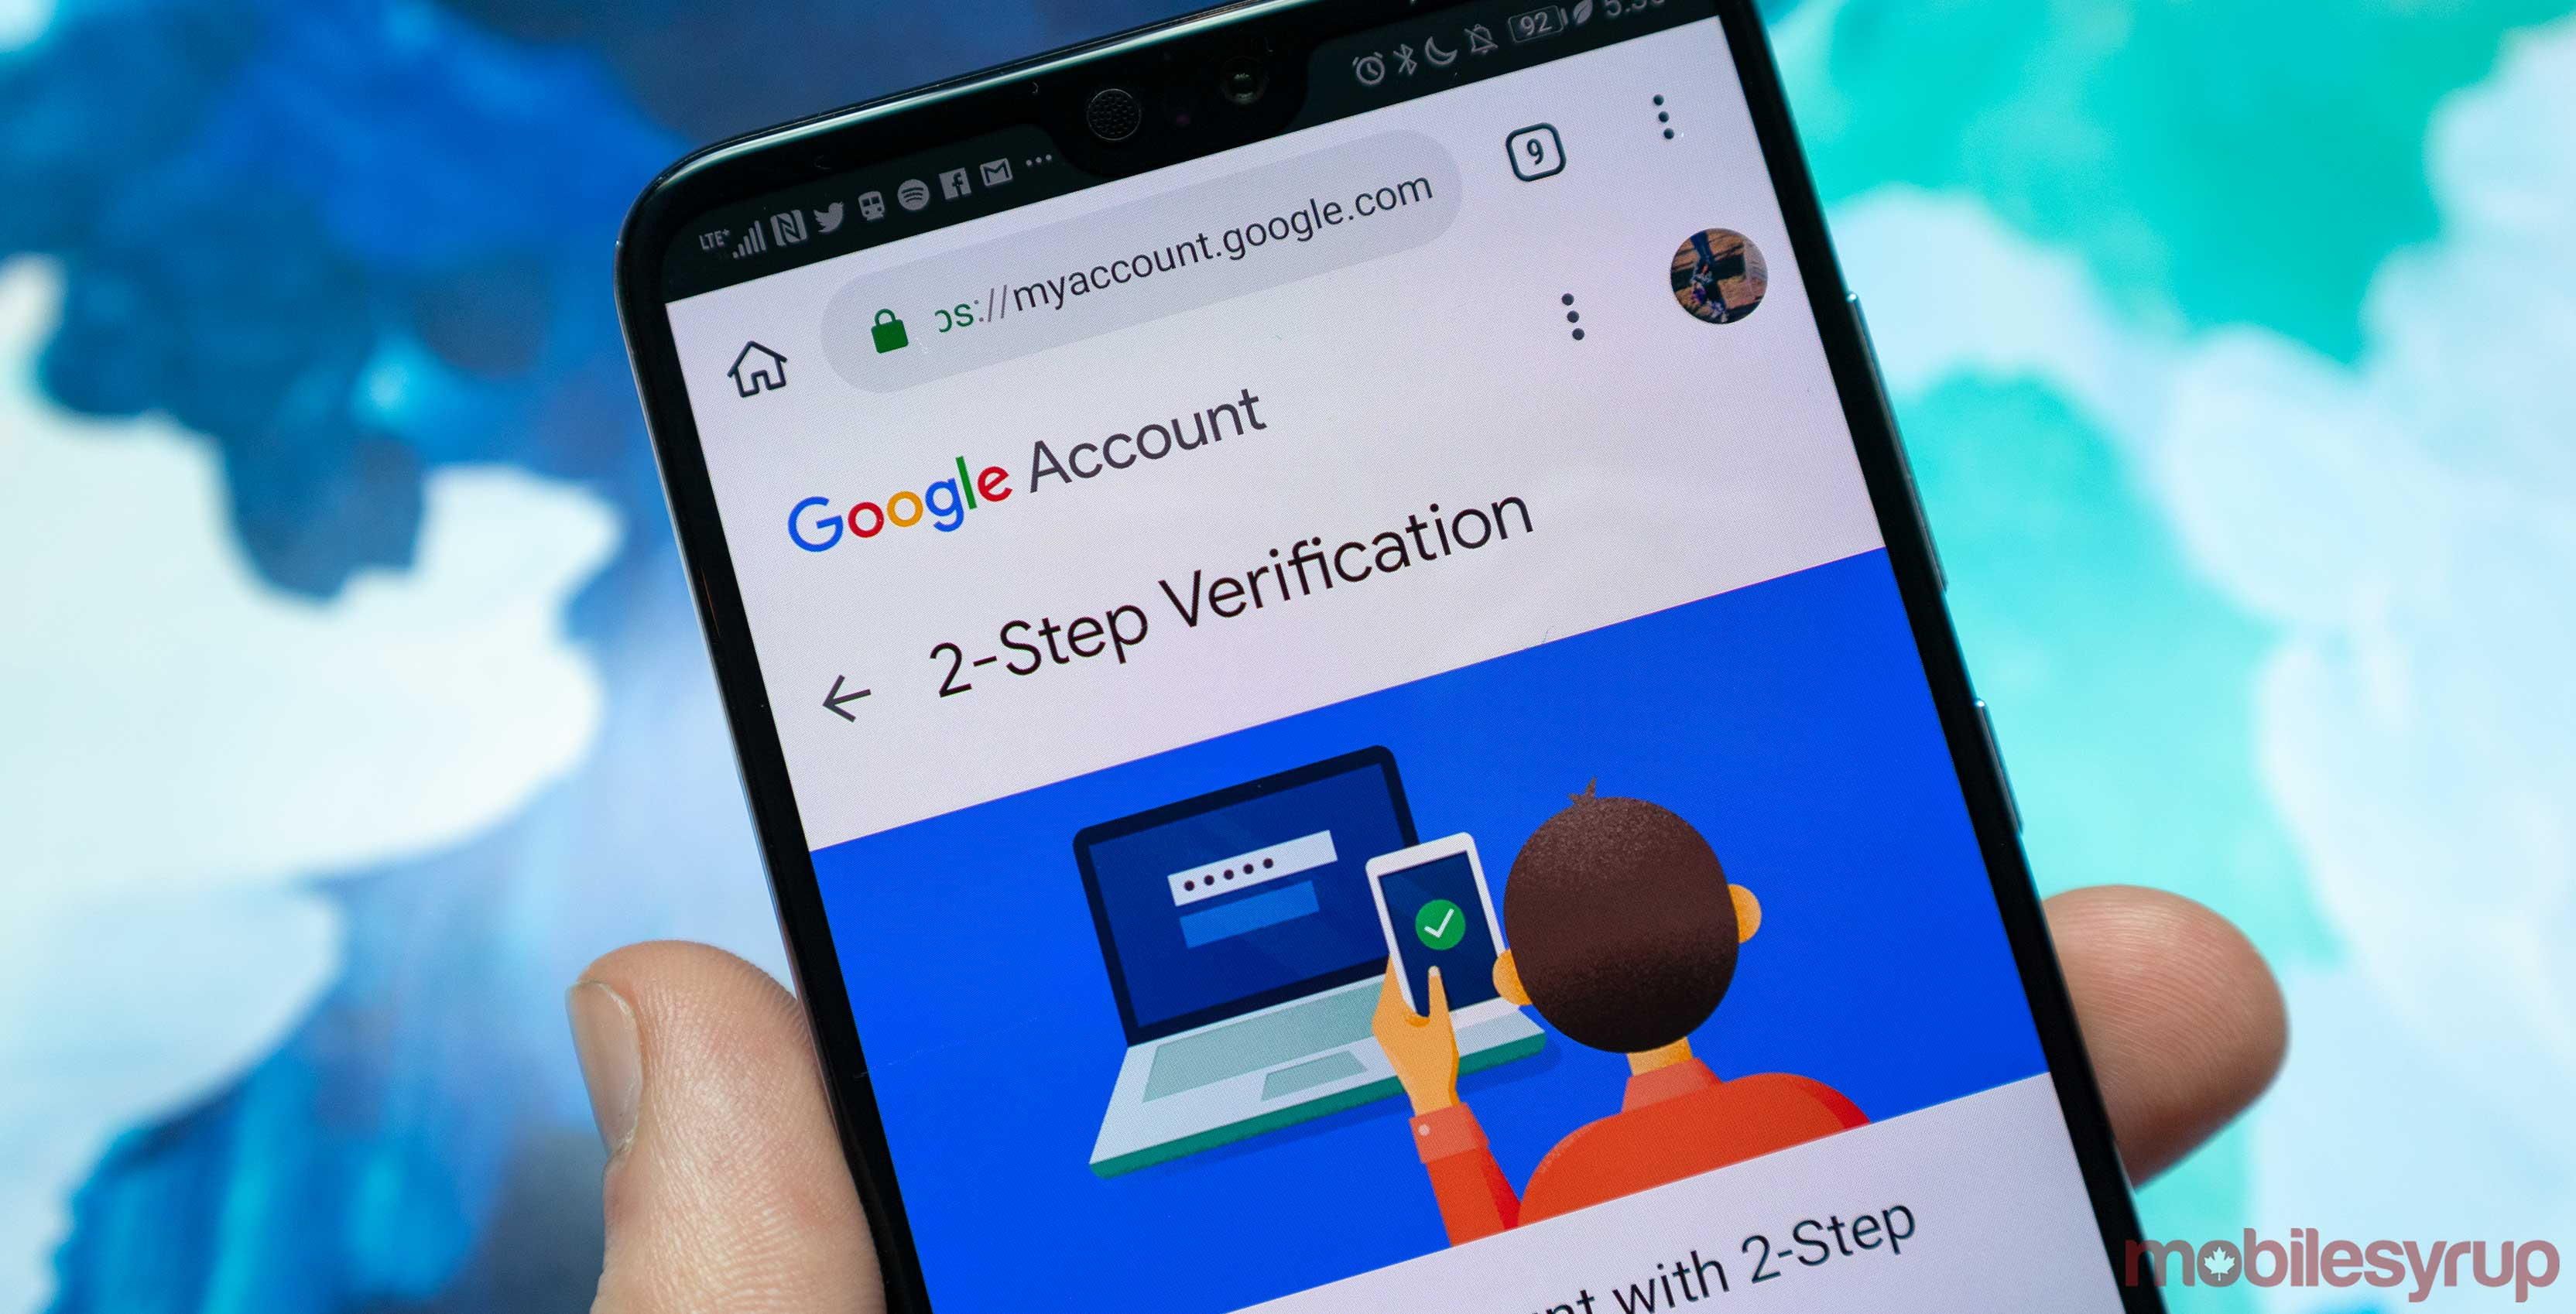 Google is beta testing Android phones as Bluetooth-based two-step verification tokens